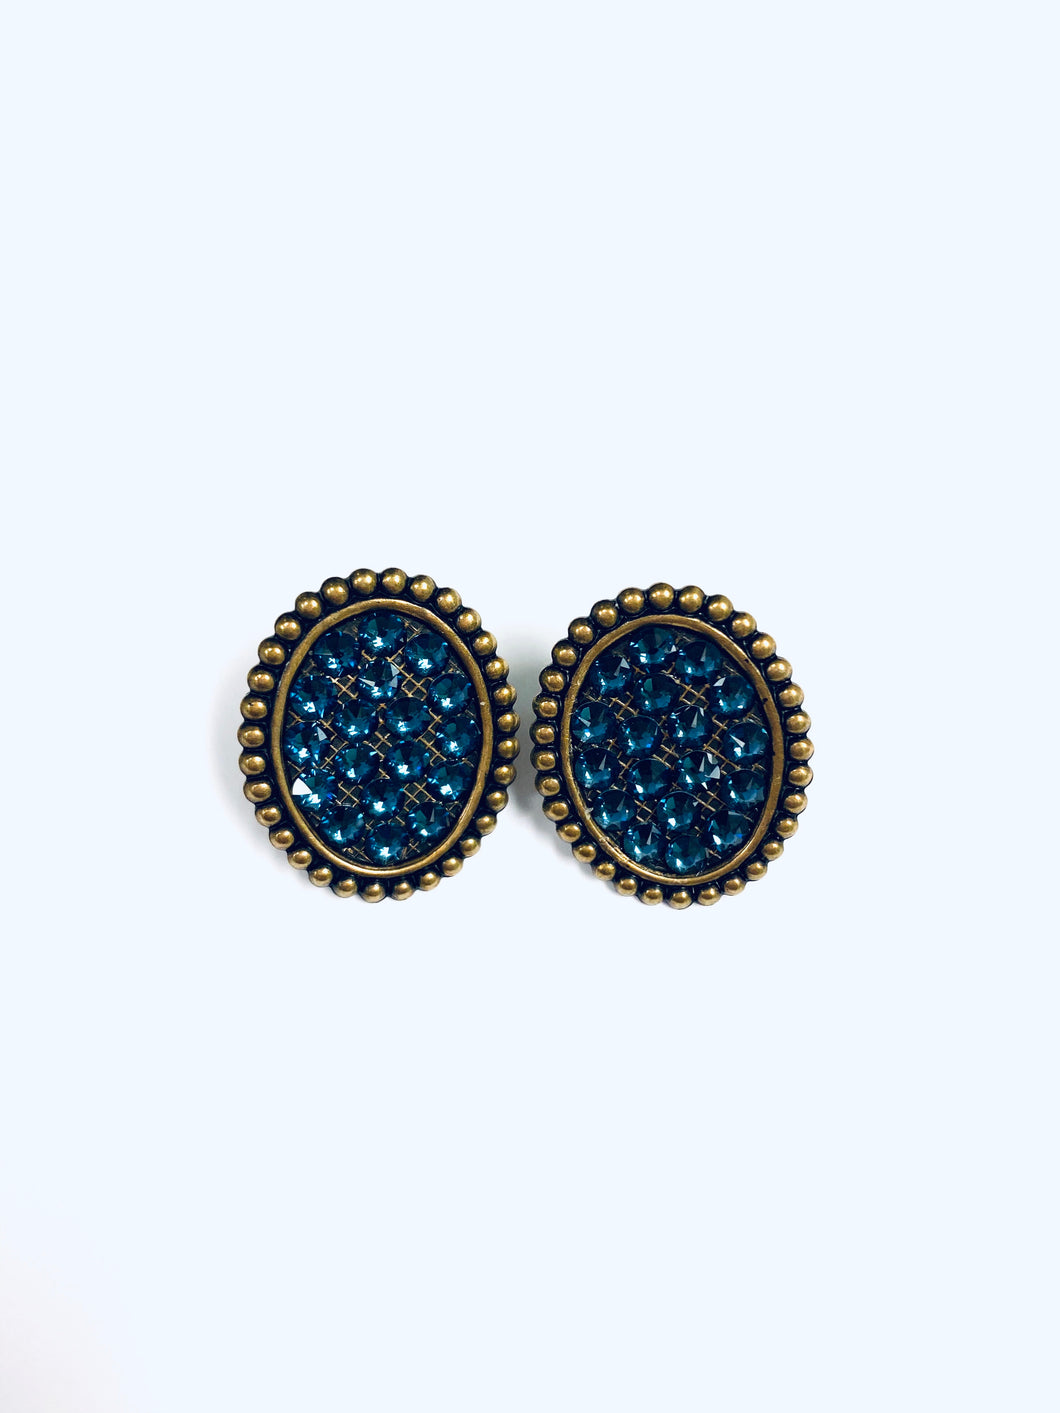 Navy Blue Crystals on Gold Oval Studs- e420bmt-The Twisted Chandelier--The Twisted Chandelier